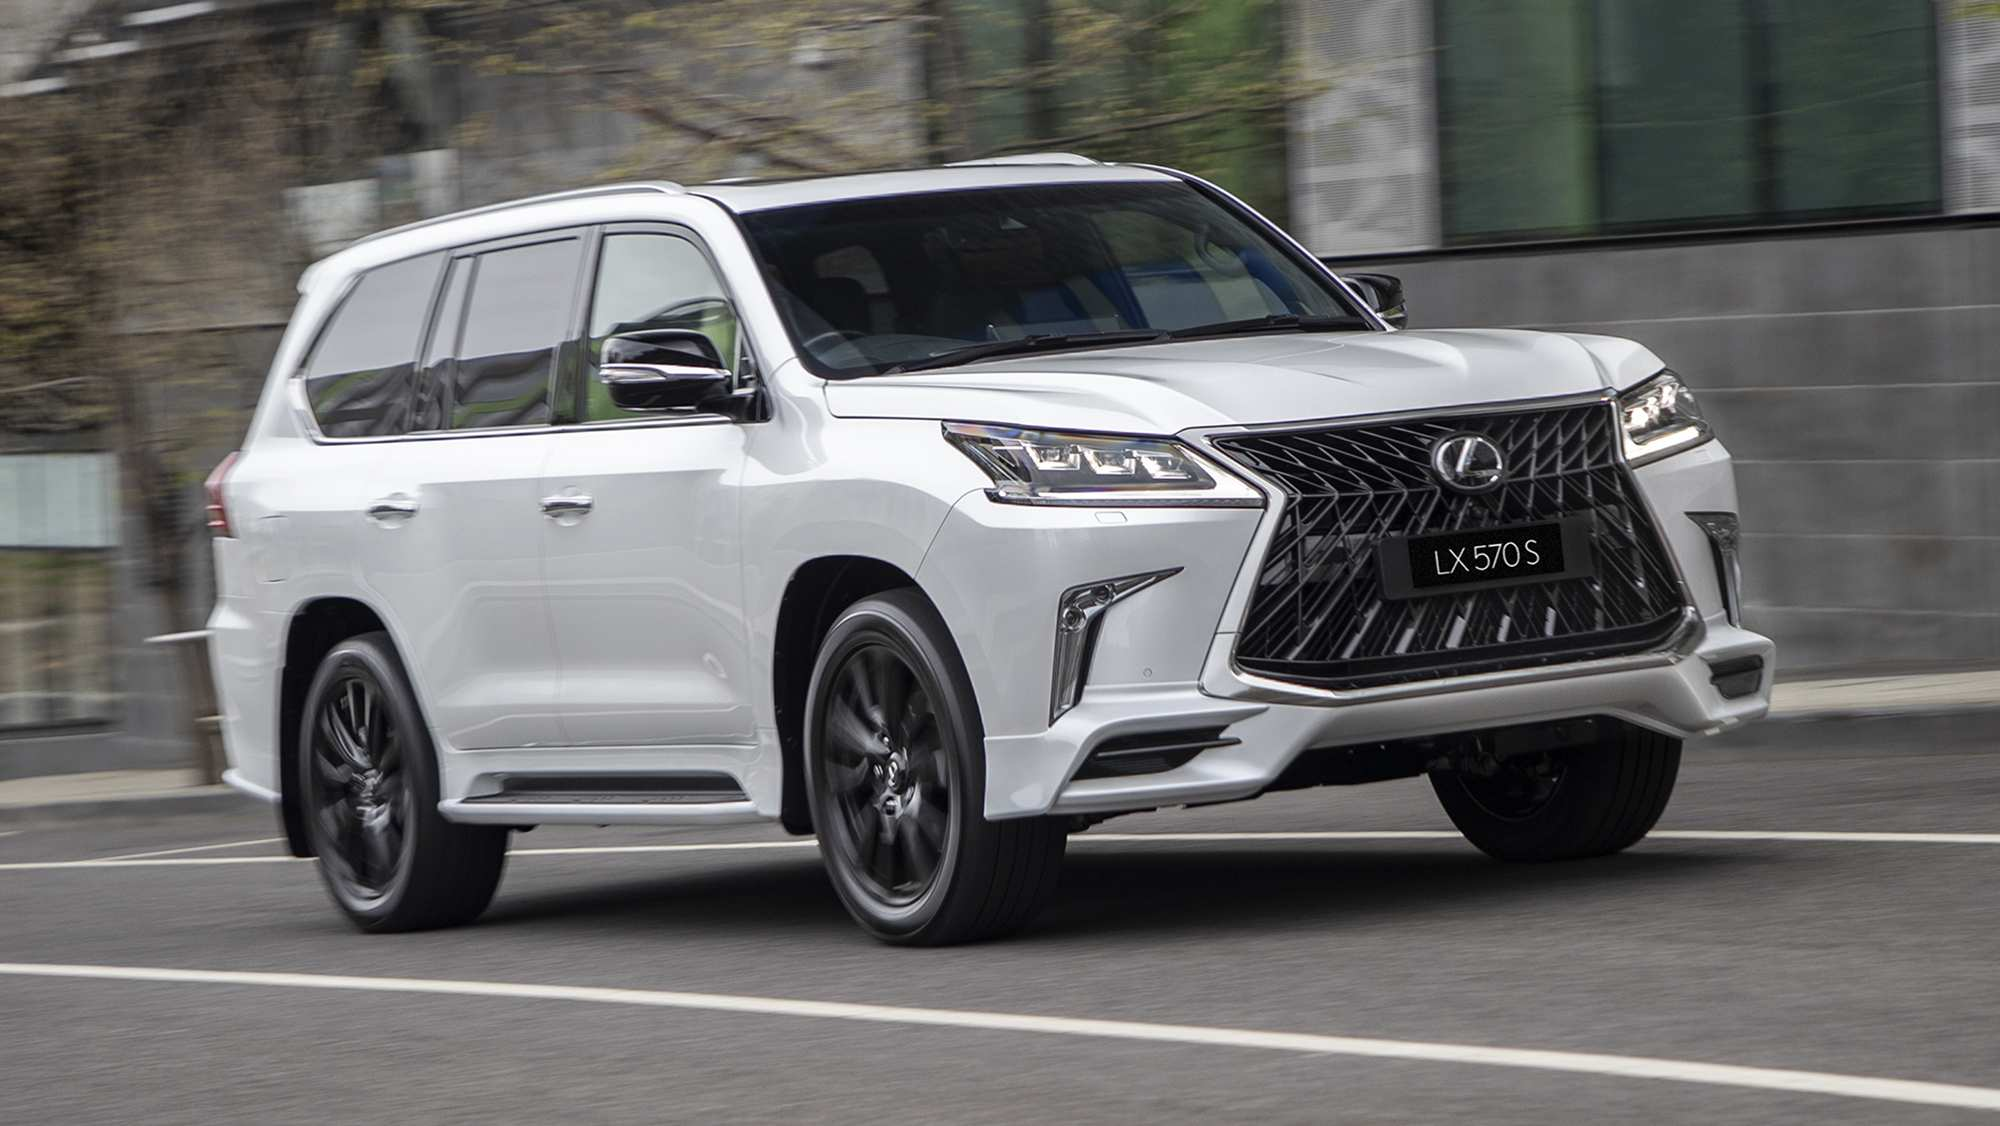 89 The Best Lexus Lx 570 Year 2020 Rumors